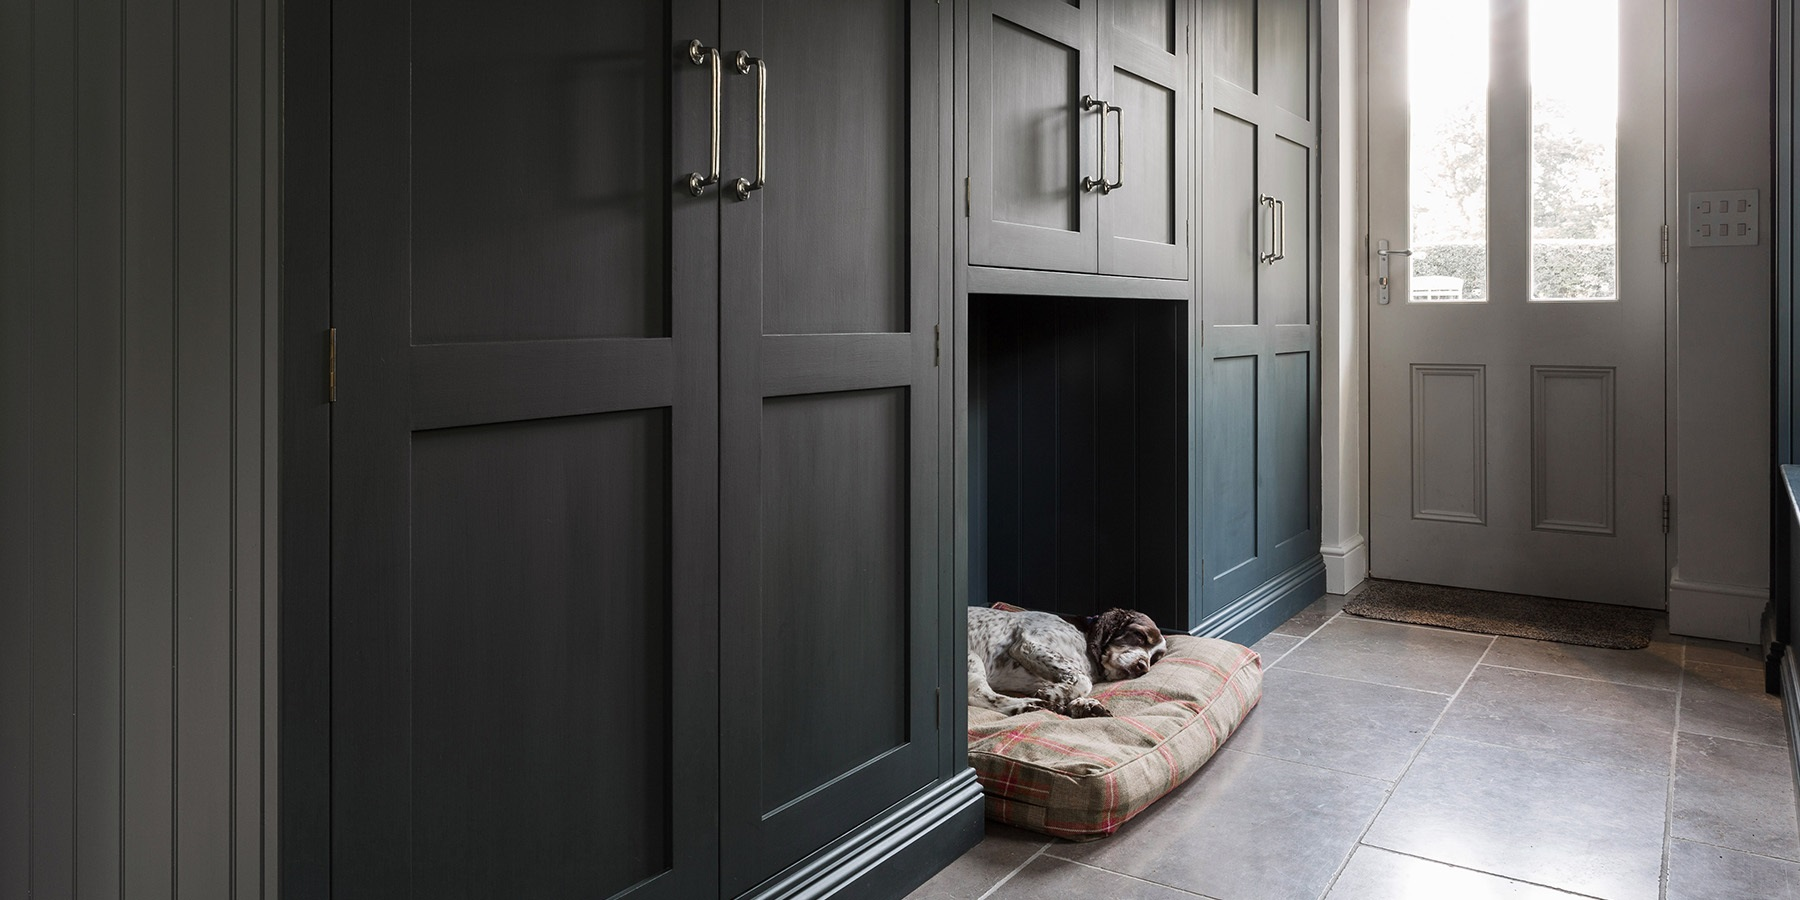 Handmade Utility Room & Bootroom Storage  - Burlanes handmade utility and bootroom storage with bespoke dog bed area and beautiful shaker panelling.